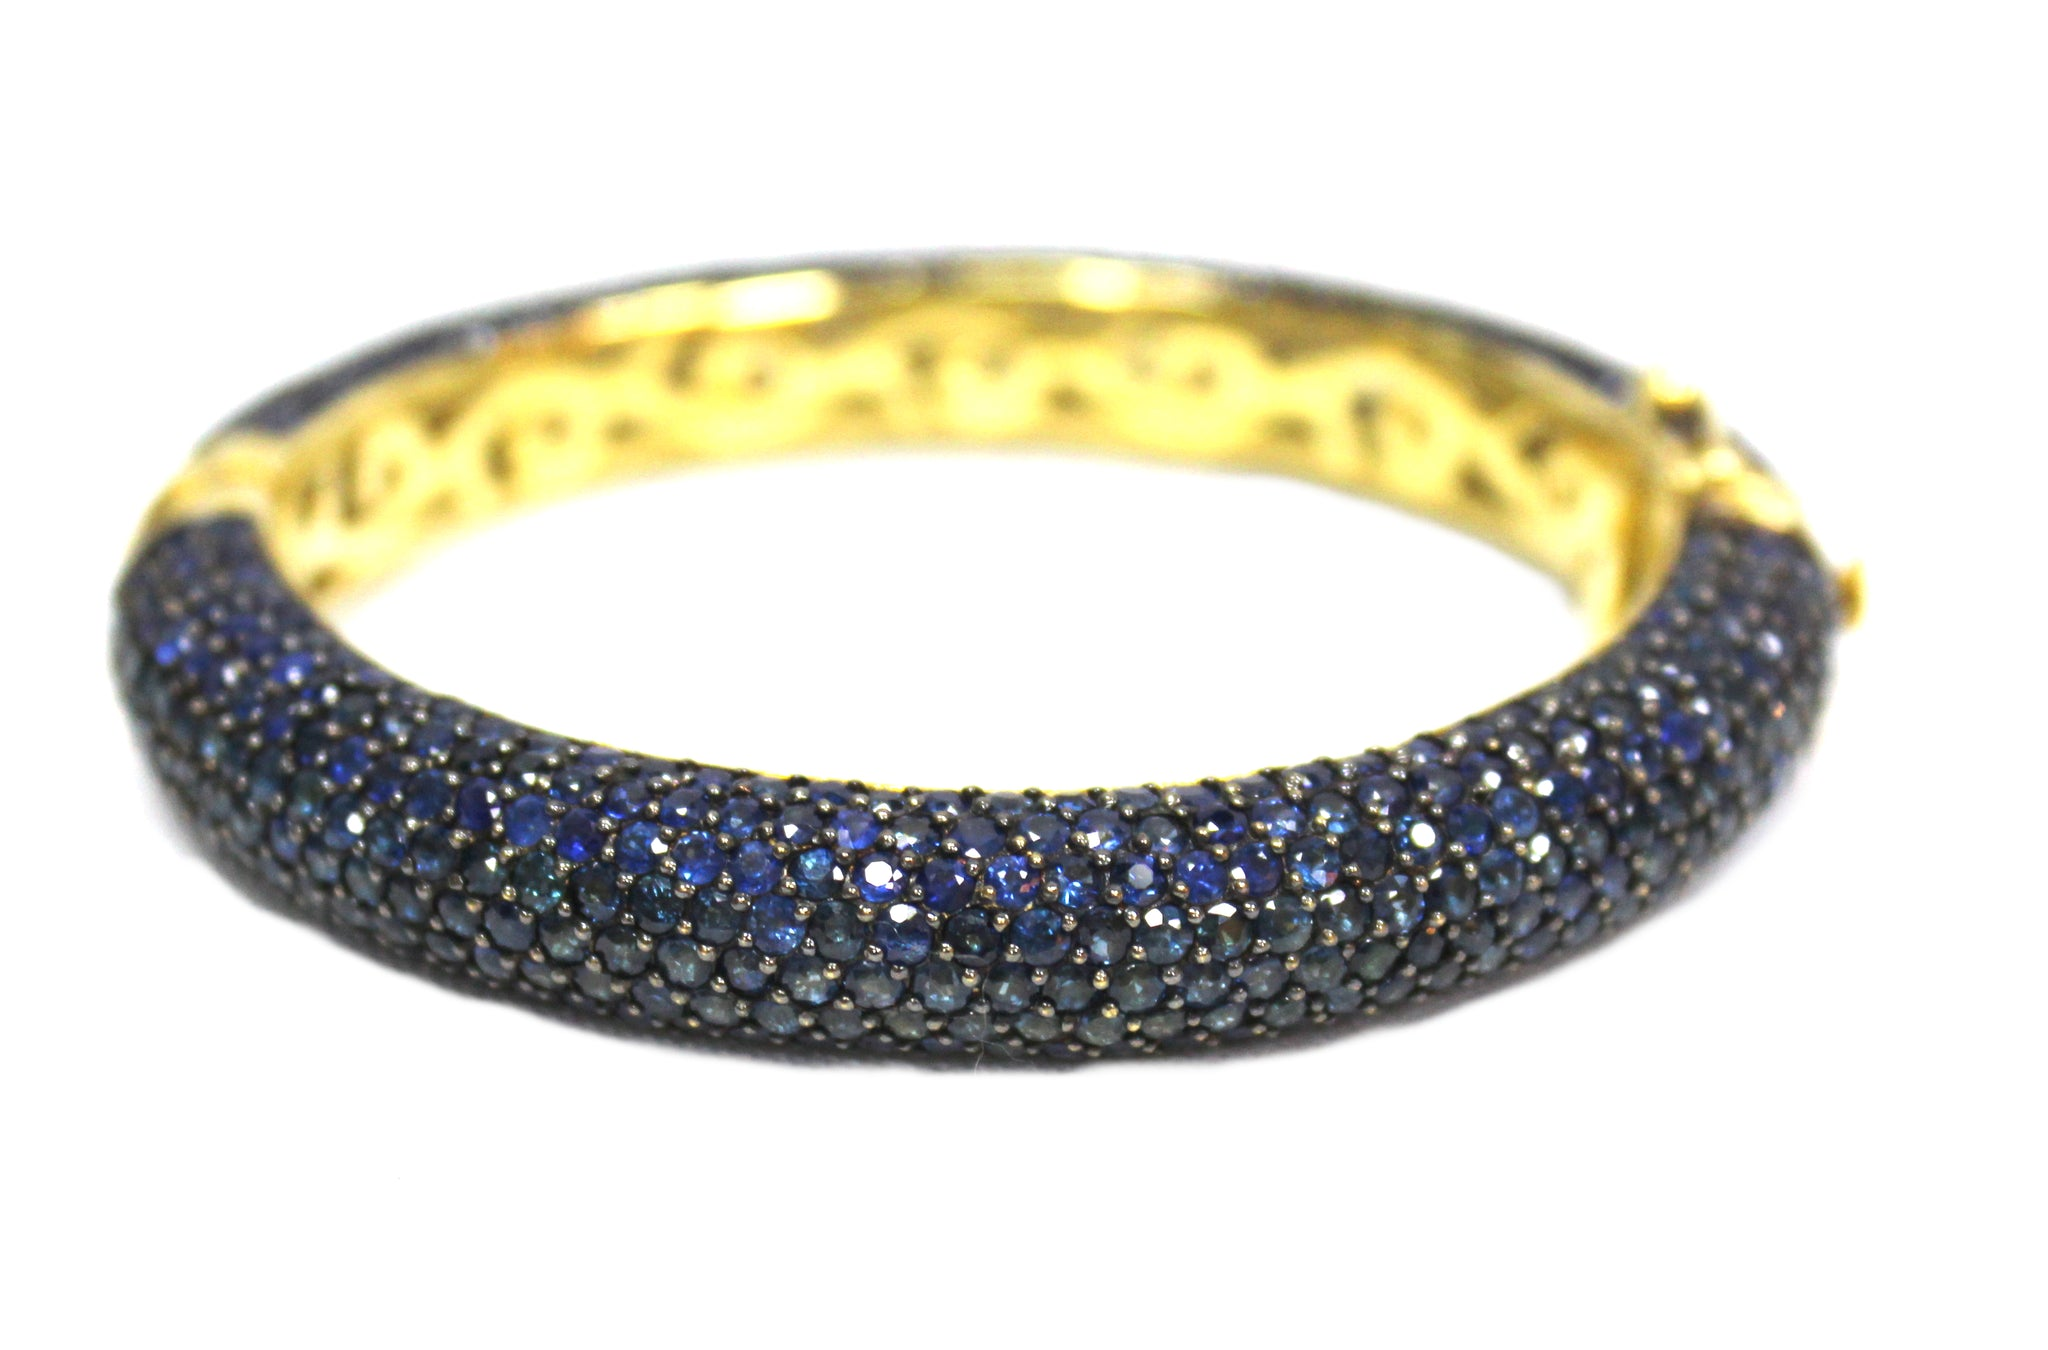 Ceylon Cornflower Blue Sapphire Bangle Bracelet